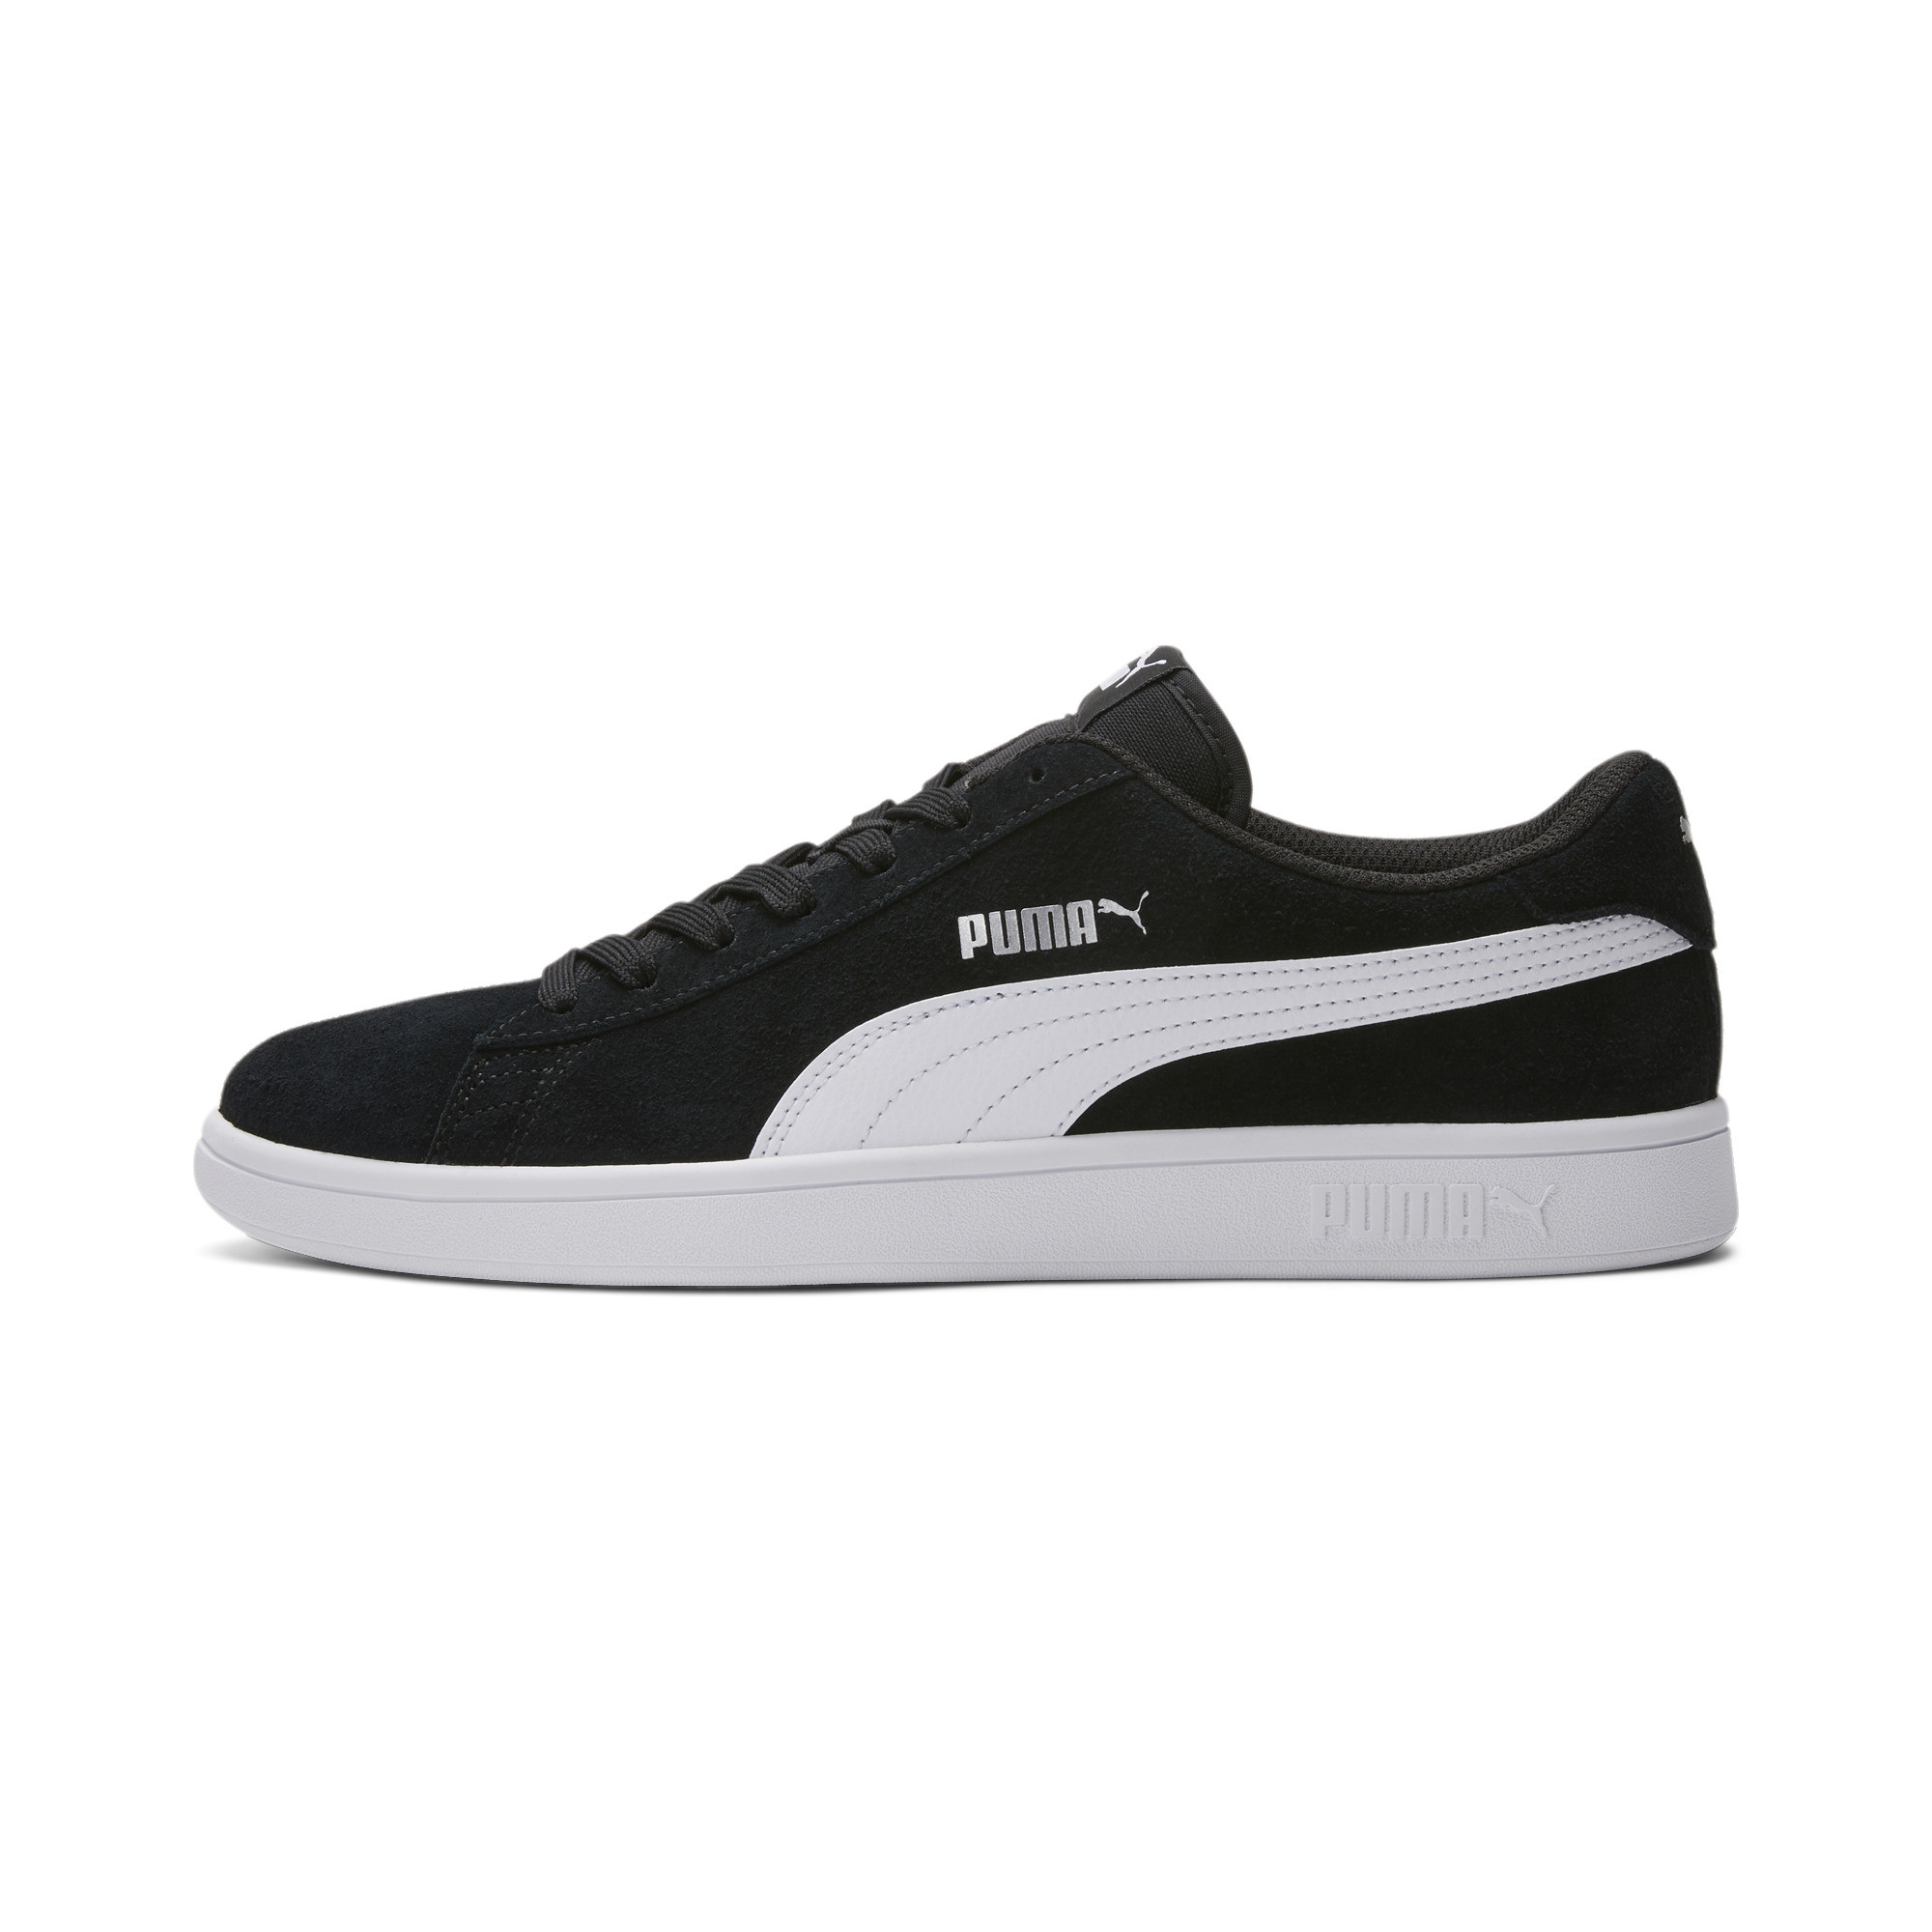 PUMA-PUMA-Smash-v2-Men-039-s-Sneakers-Men-Shoe-Basics thumbnail 6